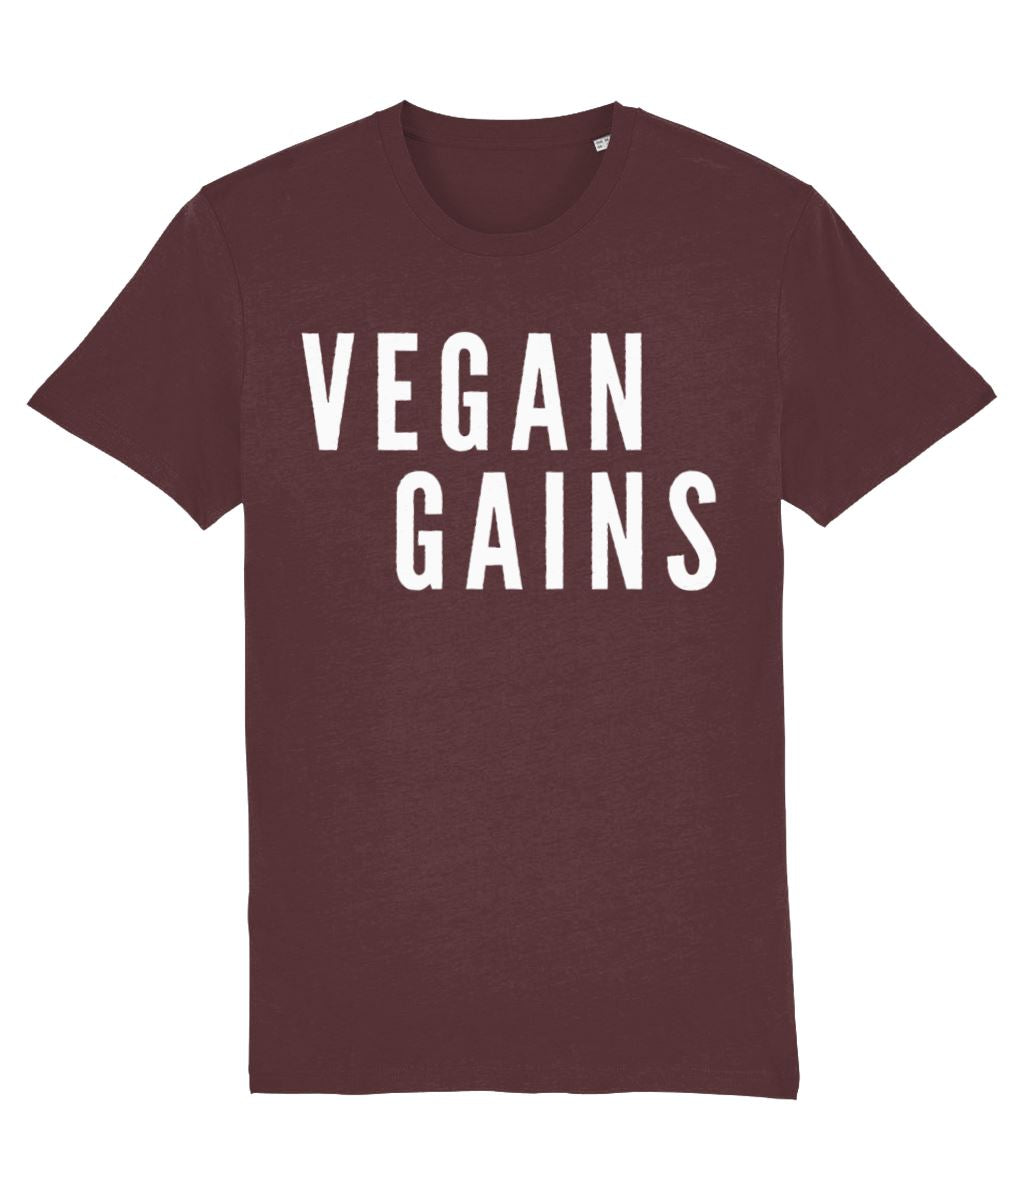 """Vegan Gains"" T-Shirt - 100% Organic Cotton (Unisex) Clothing Vegan Original Burgundy XX-Small"